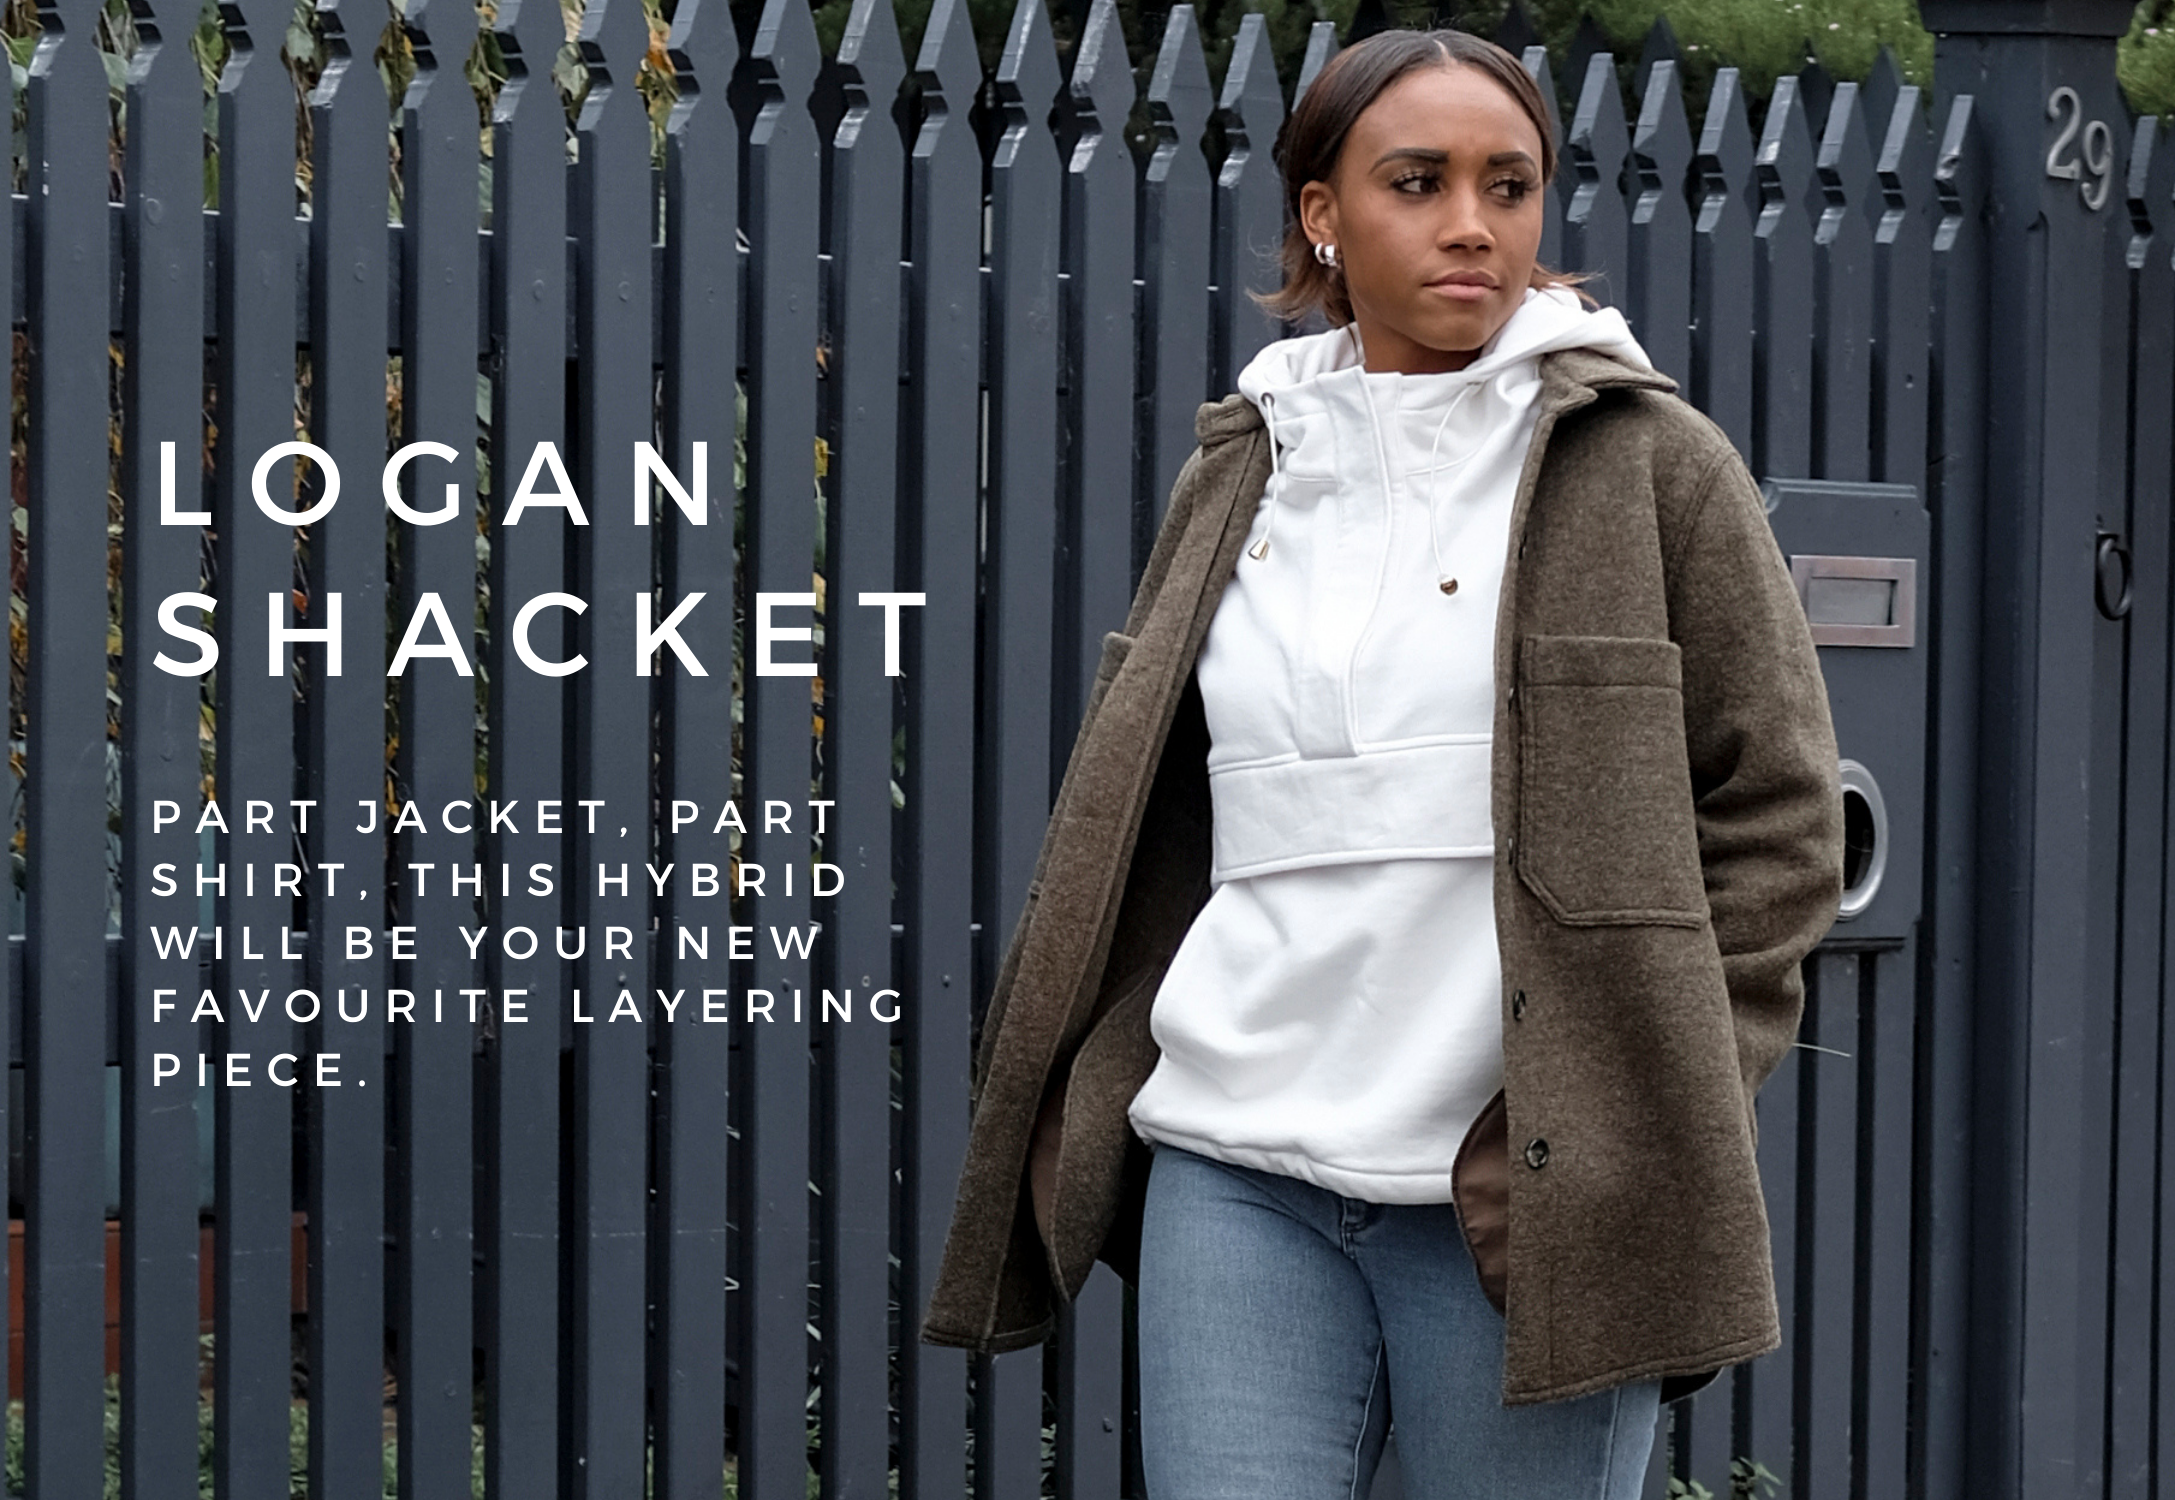 Logan Shacket- the hybrid of your favourite layering pieces